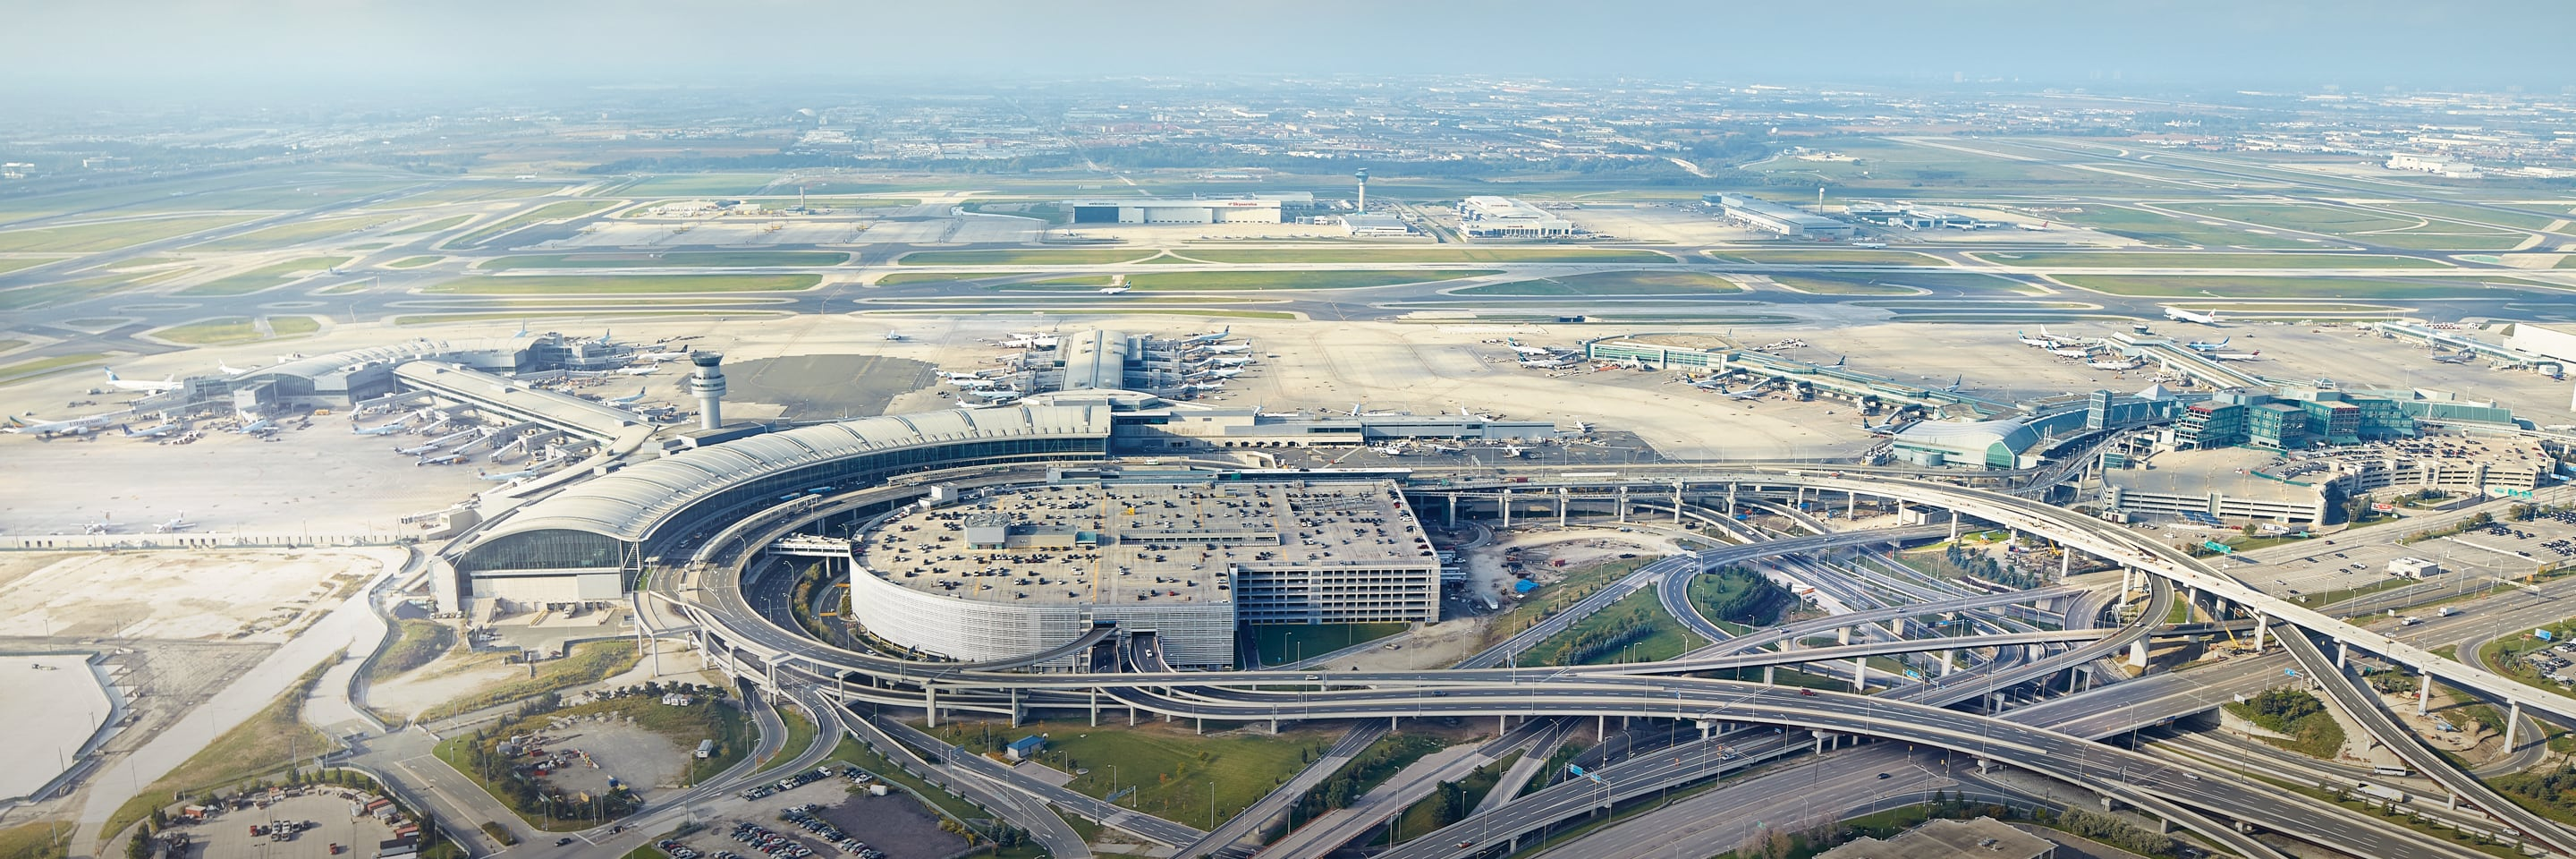 Aerial view of Pearson Airport